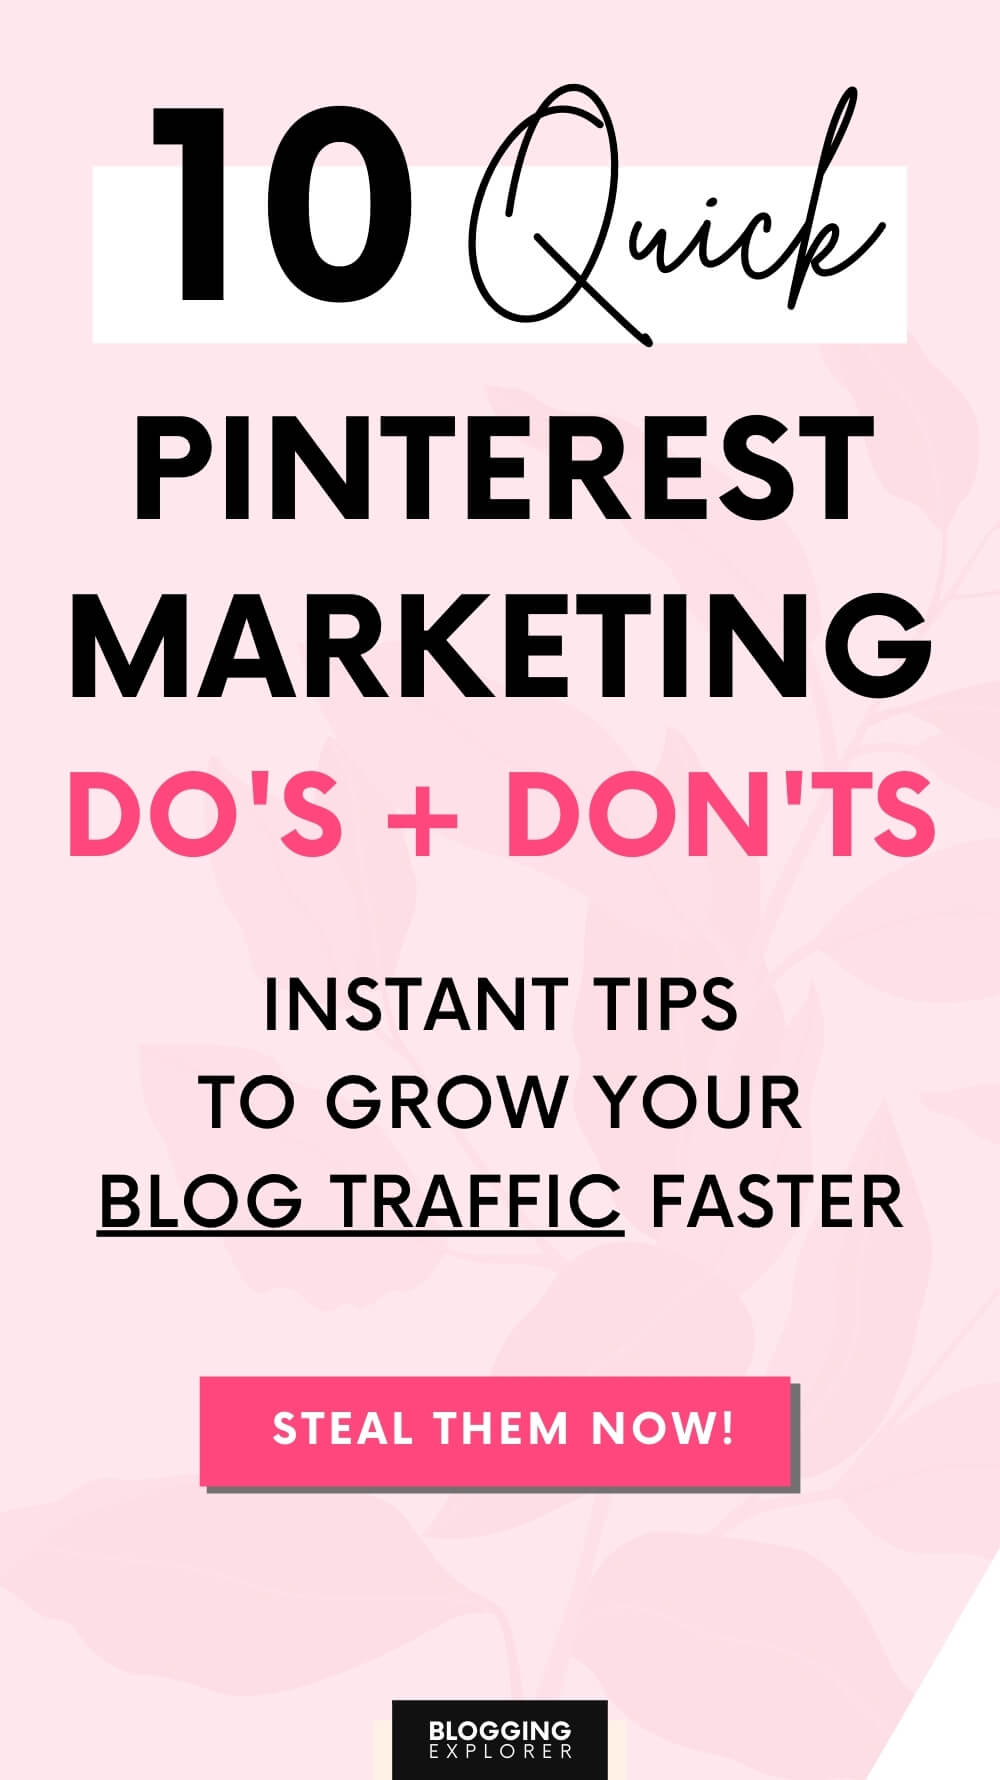 Pinterest marketing strategy dos and donts for bloggers - Blogging Explorer